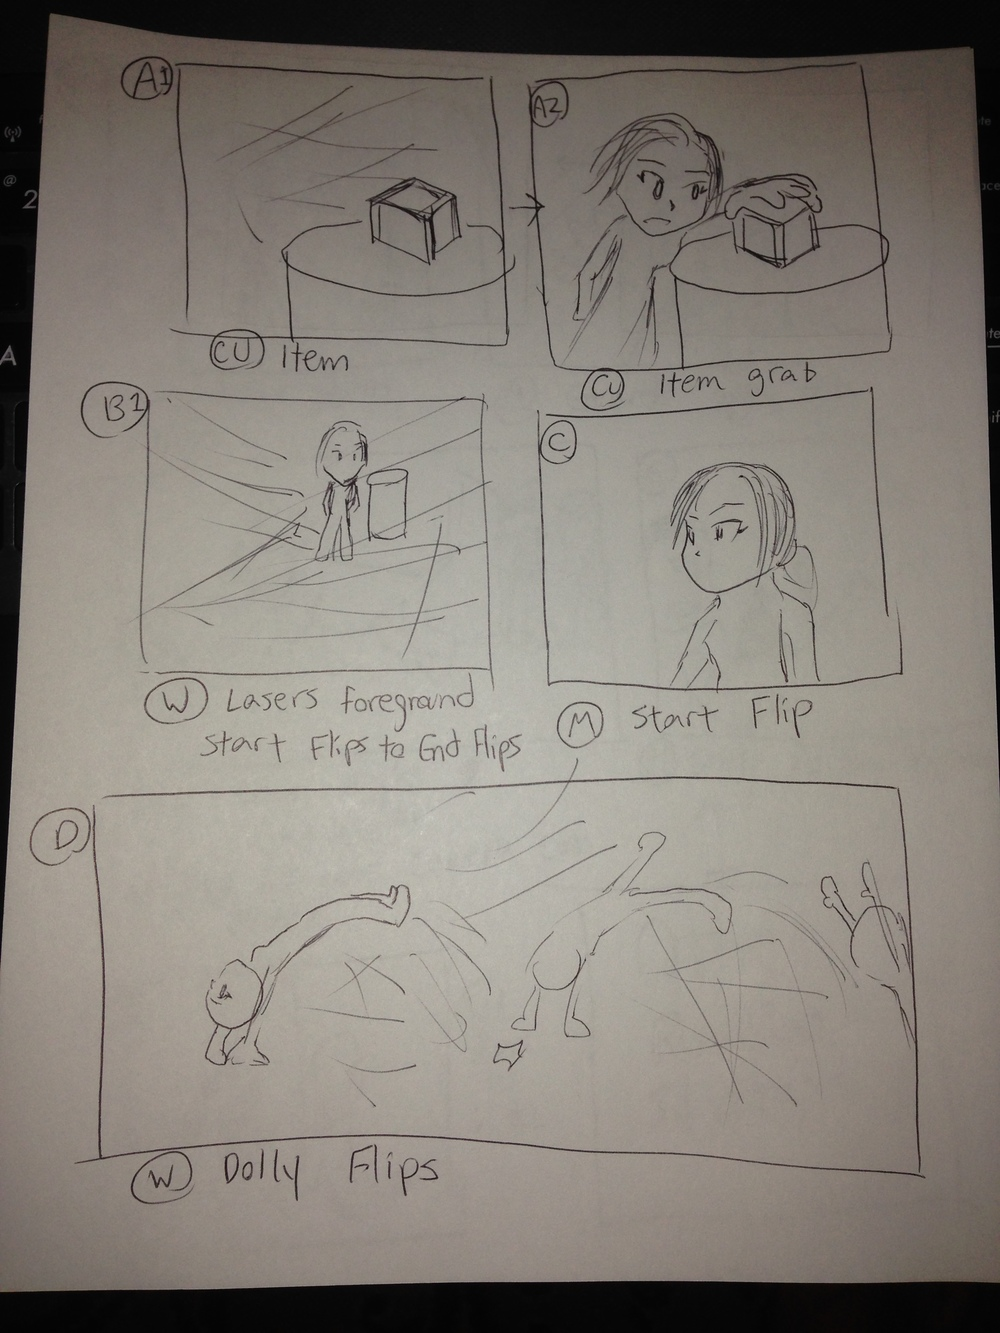 Storyboard Page 1 of 3.JPG